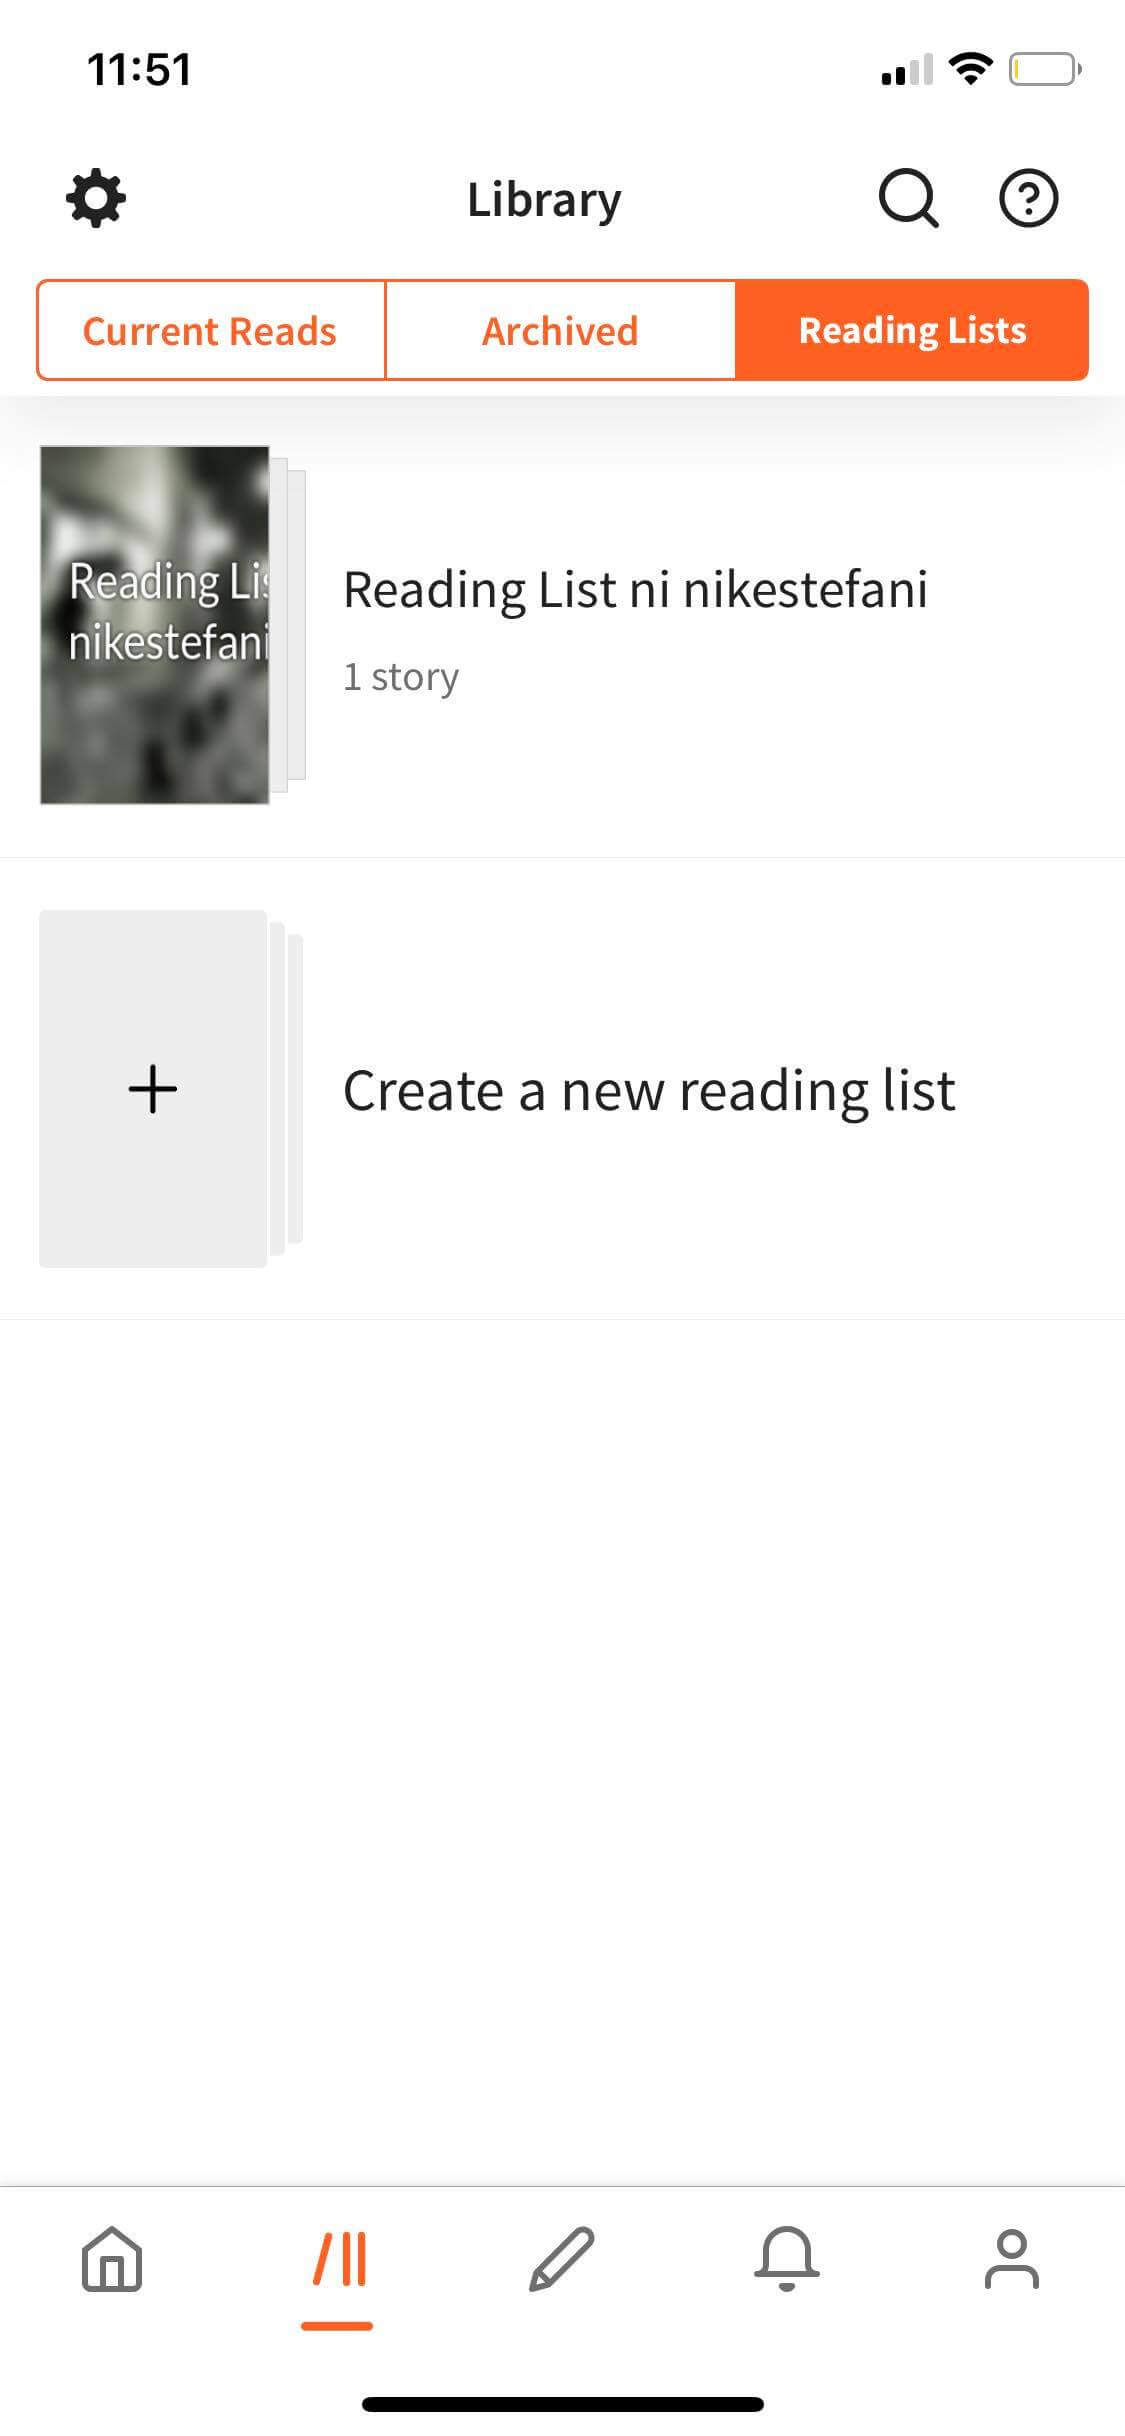 Walkthrough on iOS by Wattpad from UIGarage